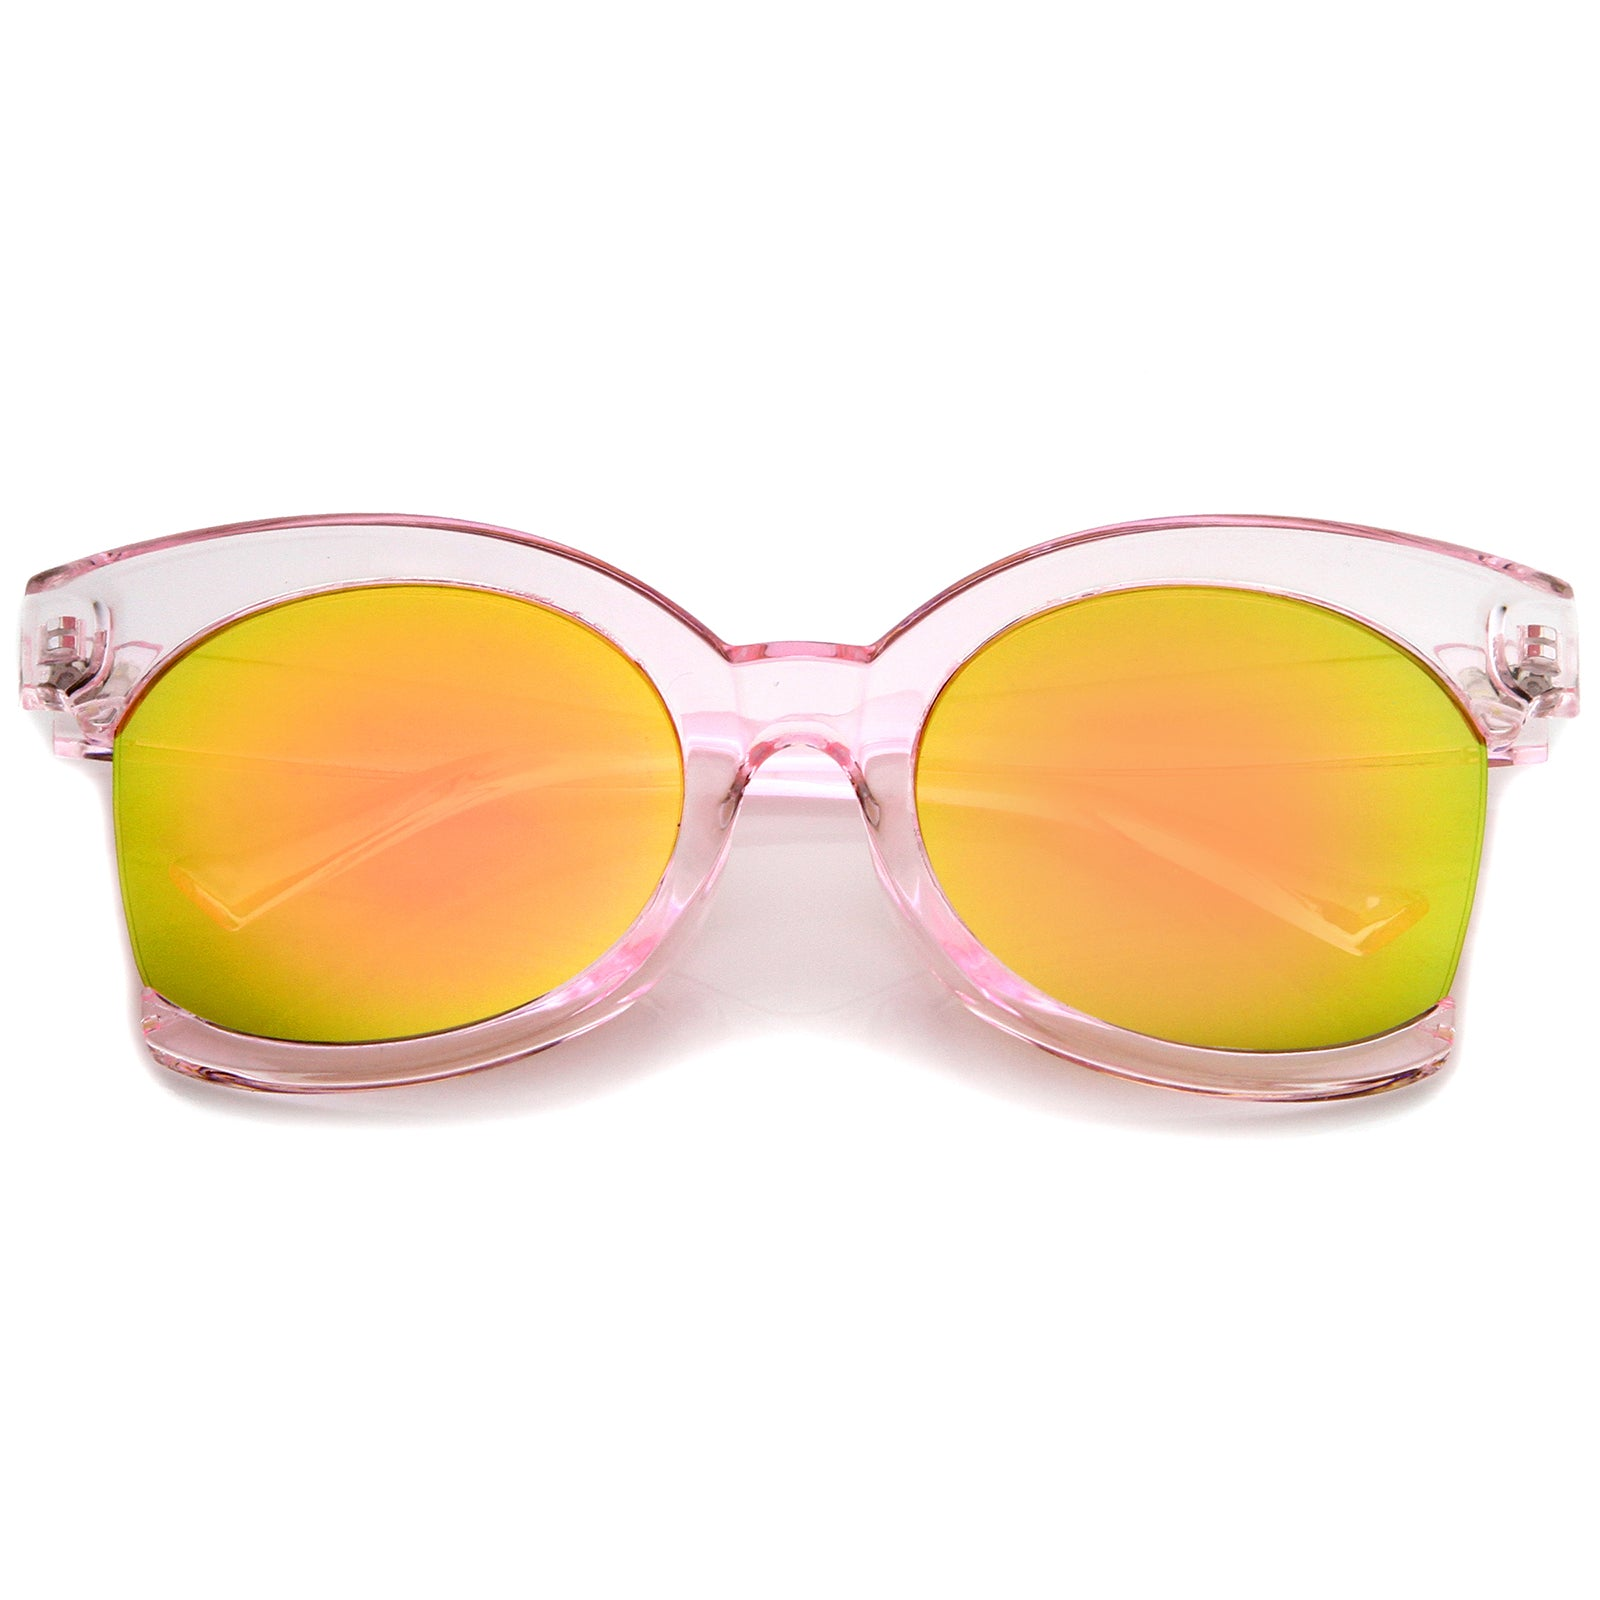 Women's Oversize Side Cut Transparent Frame Colored Mirror Cat Eye Sunglasses 59mm - sunglass.la - 7